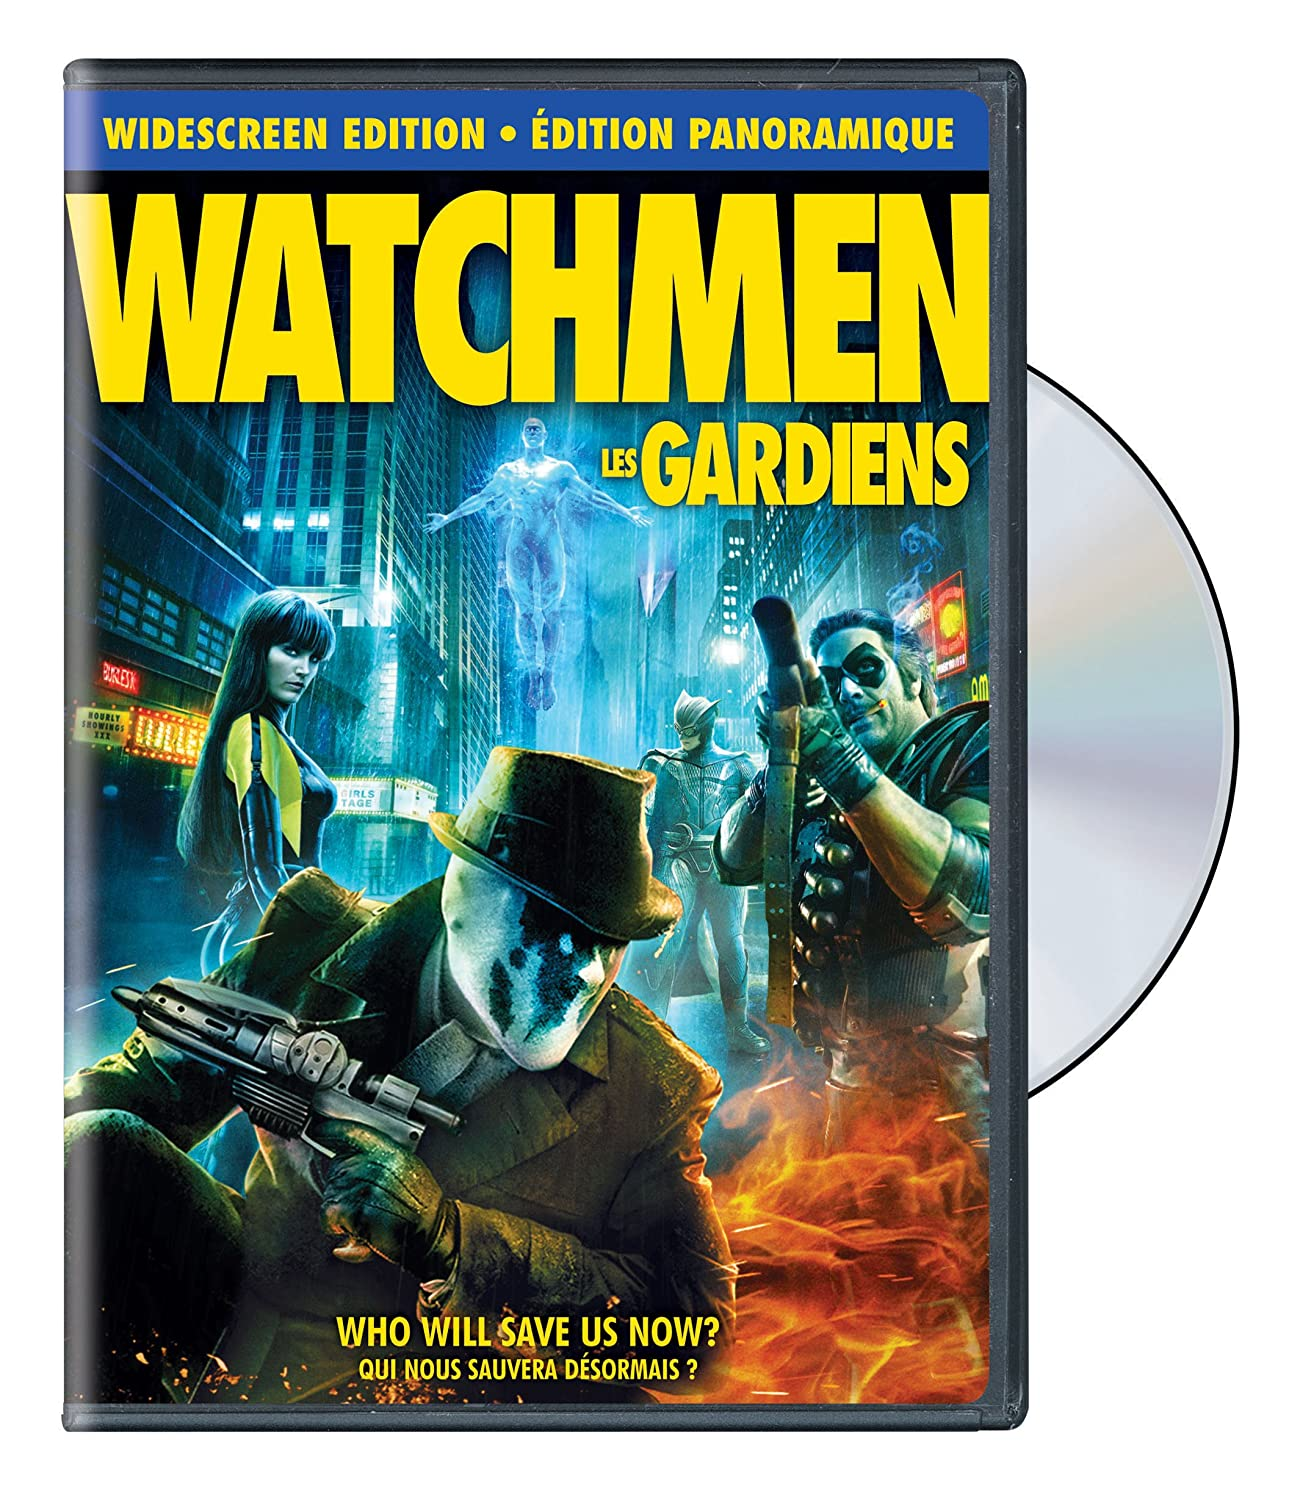 Watchmen / Les Gardiens (Bilingual) (Widescreen) Malin Akerman Billy Crudup Matthew Goode Carla Gugino